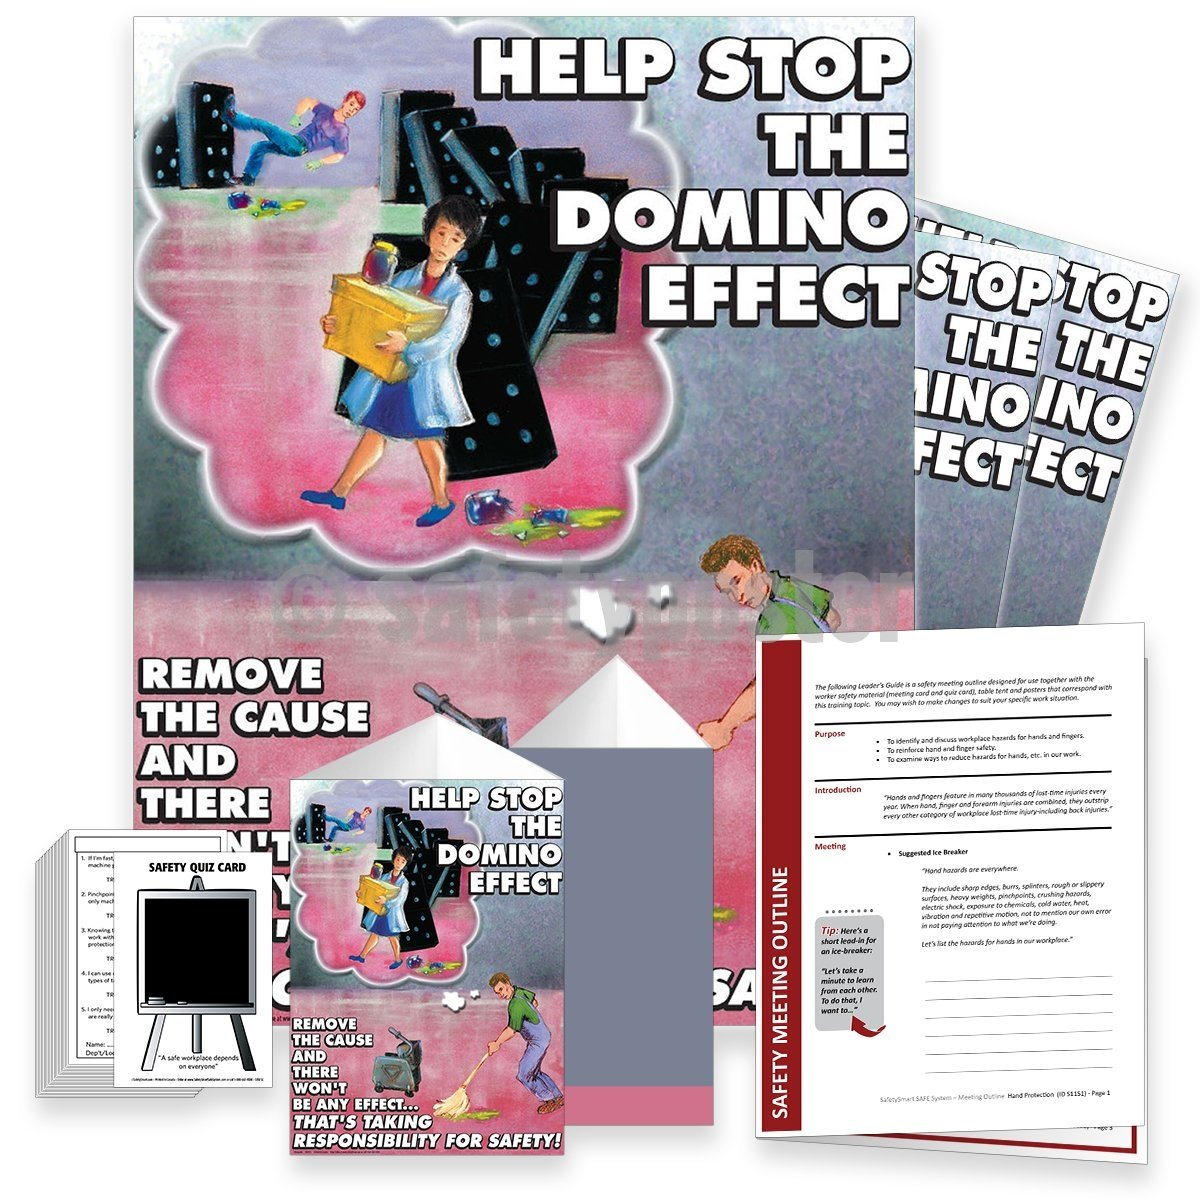 Safety Meeting Kit - Help Stop The Domino Effect Kits